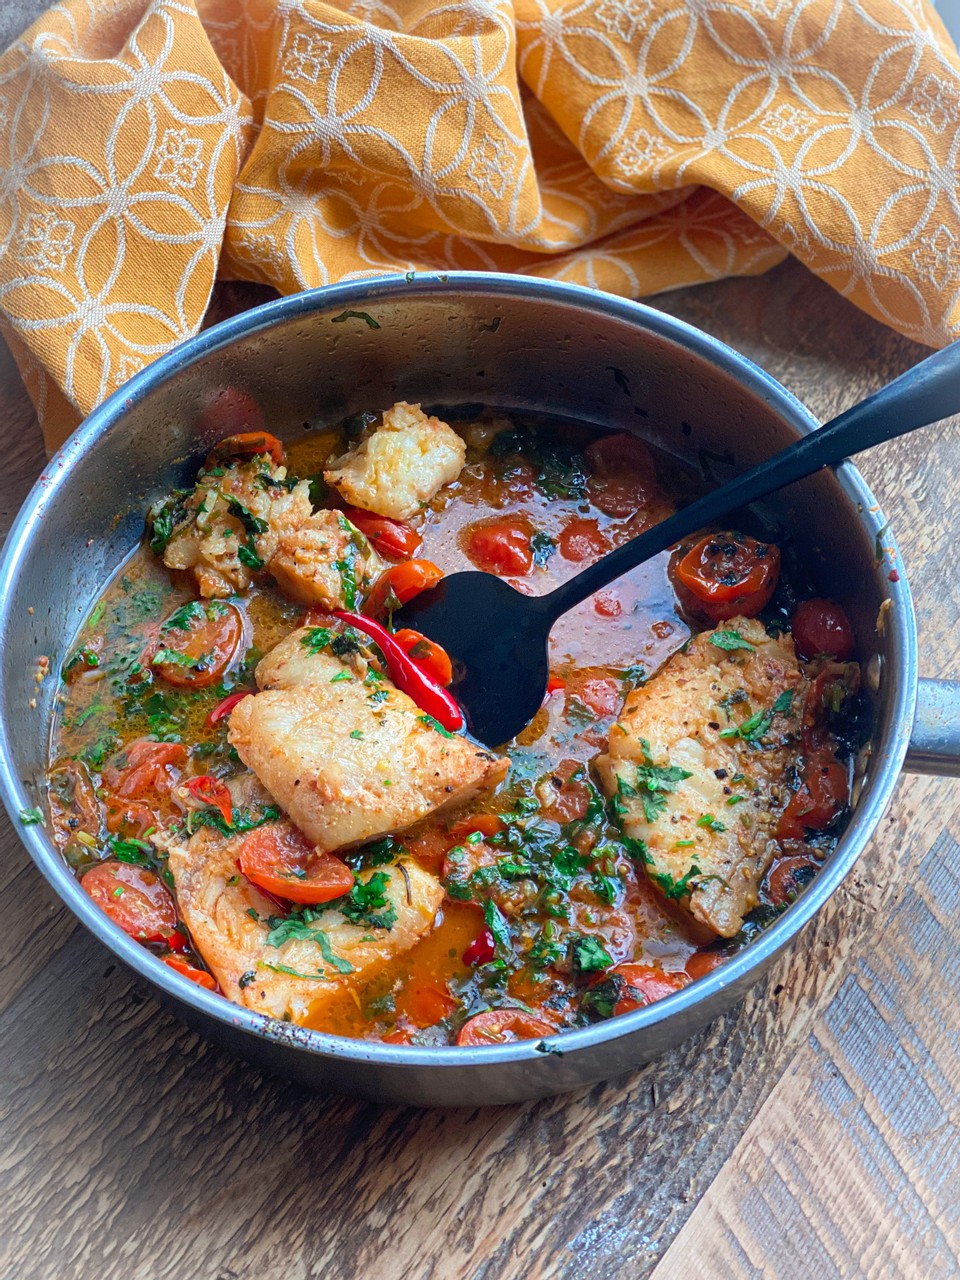 Cod in a Tomato and Herb Broth